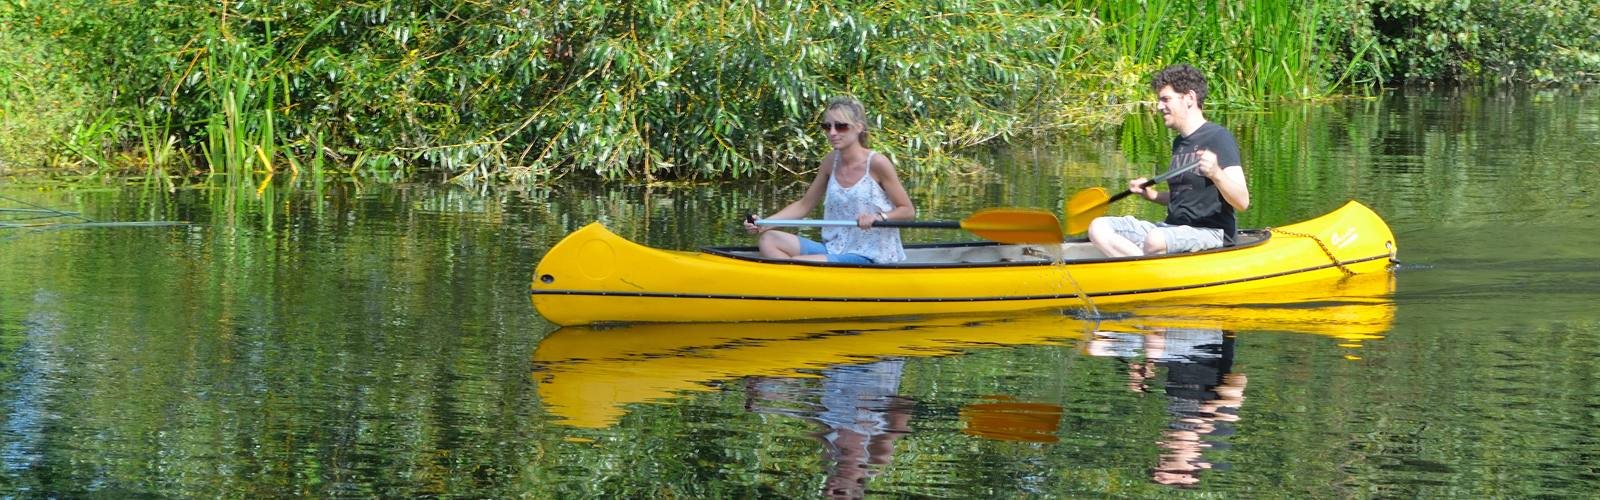 Back to nature: adventures and relaxation by the river